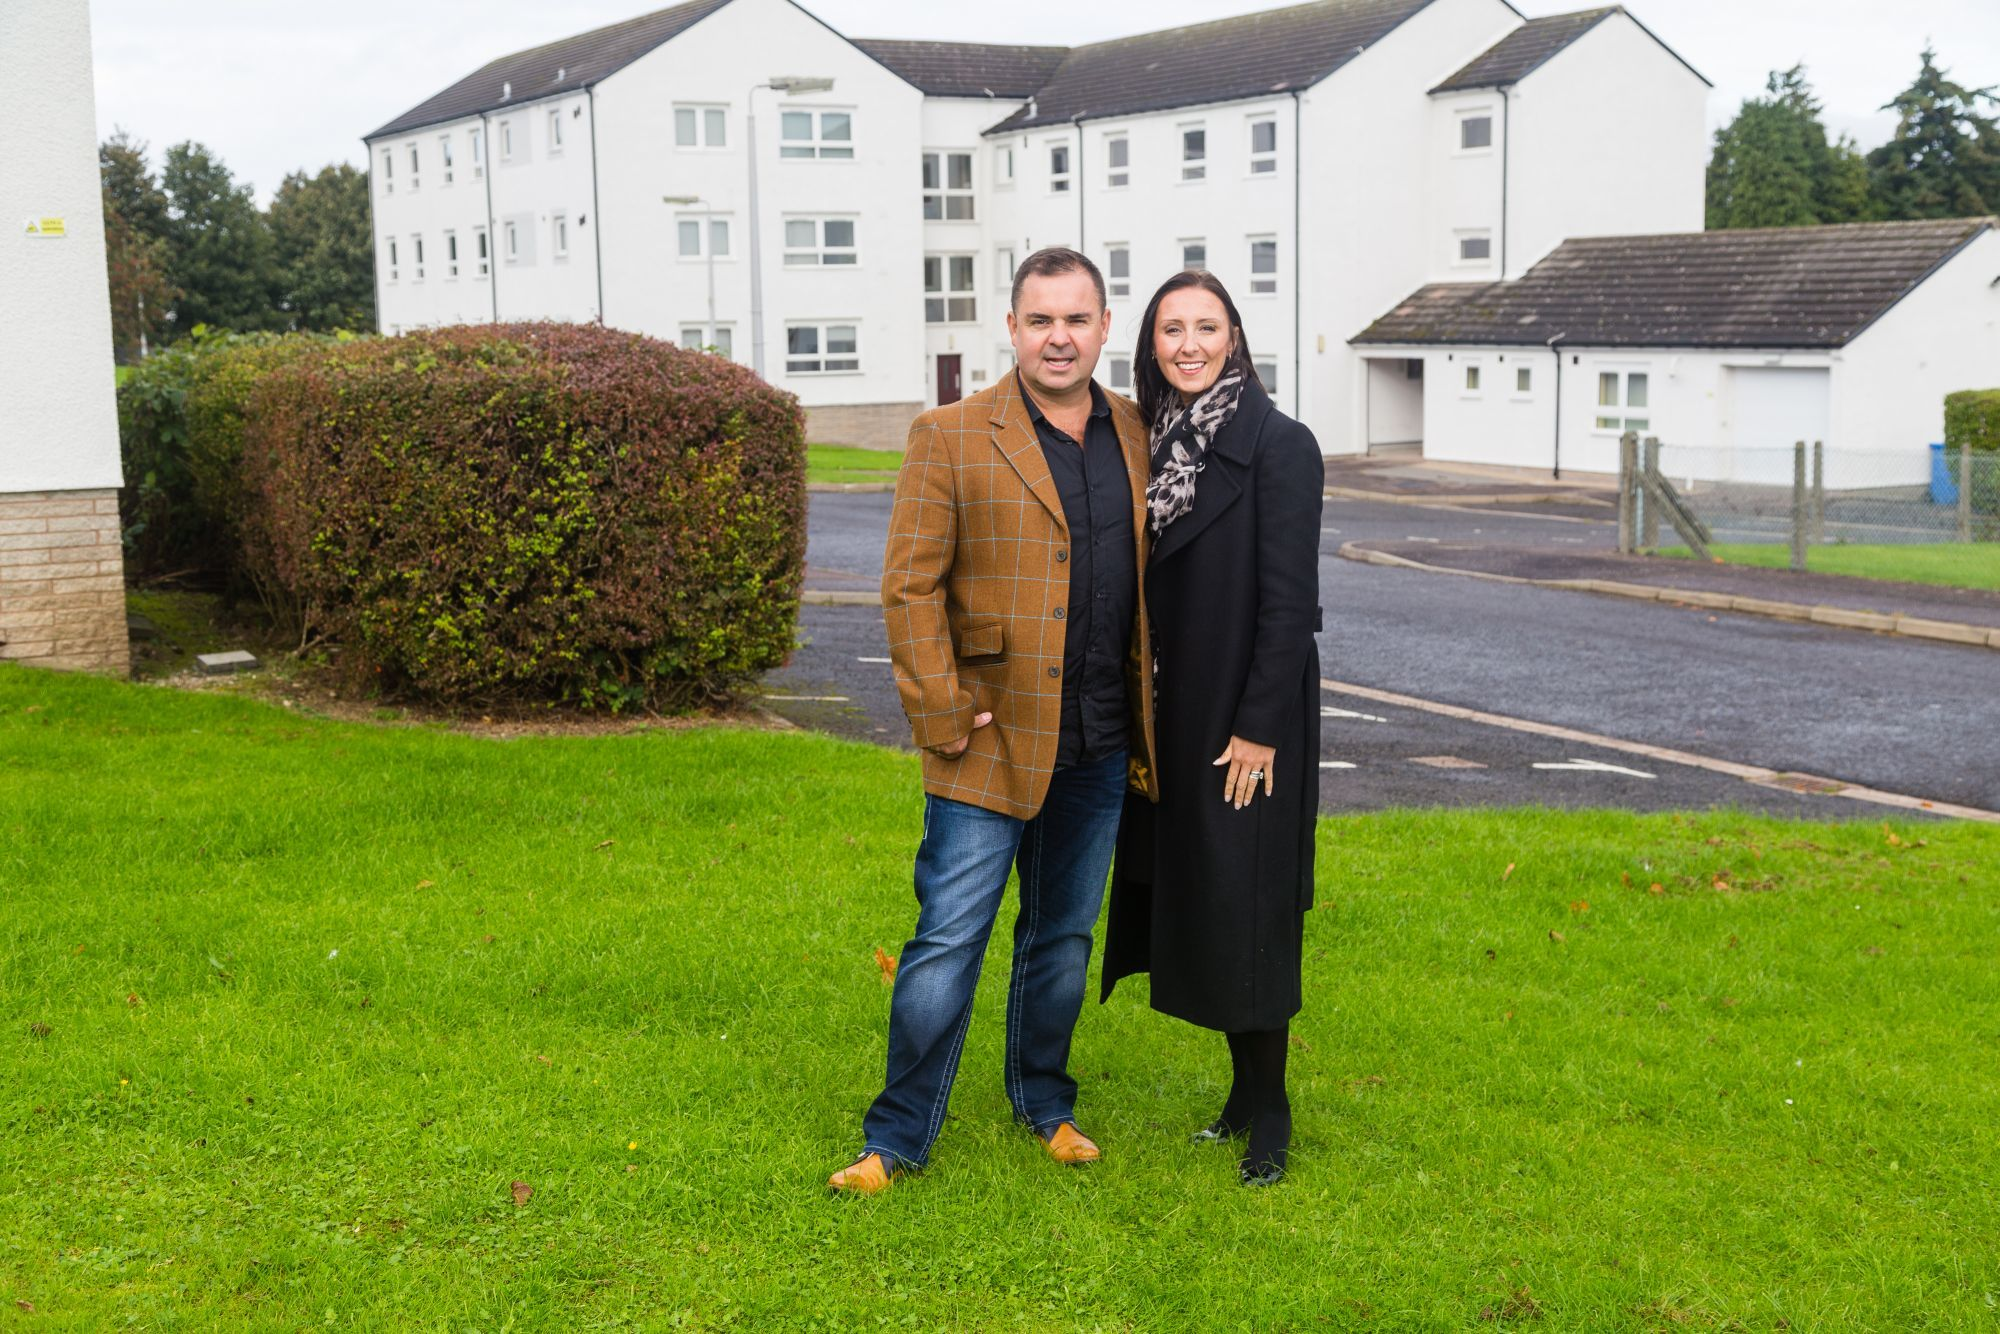 Company founders Leanne and Graeme Carling at Alloway Halls.